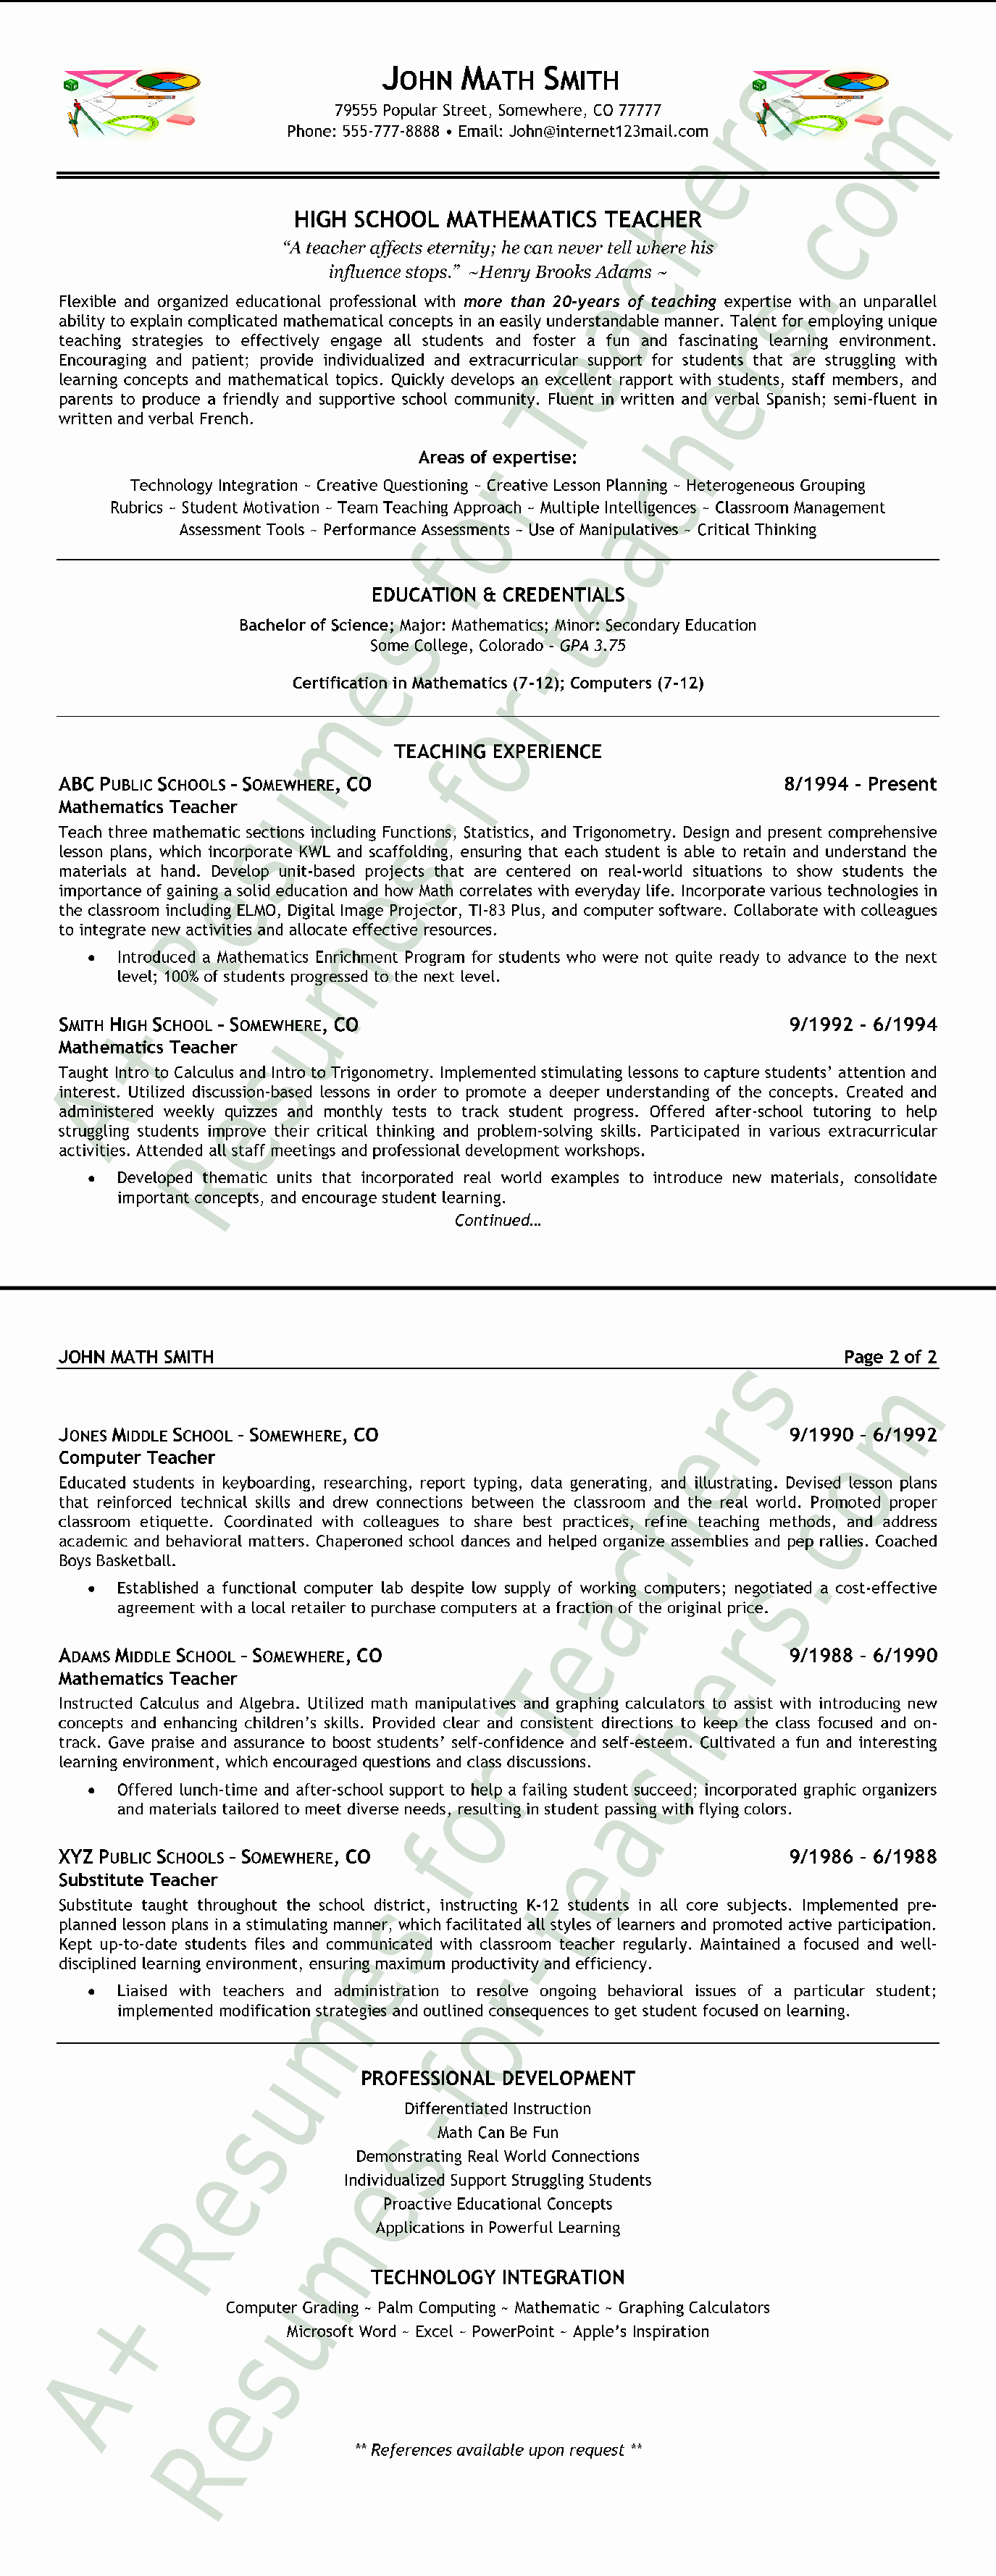 High School Teacher Resume Elegant High School Mathematics Teacher Resume format